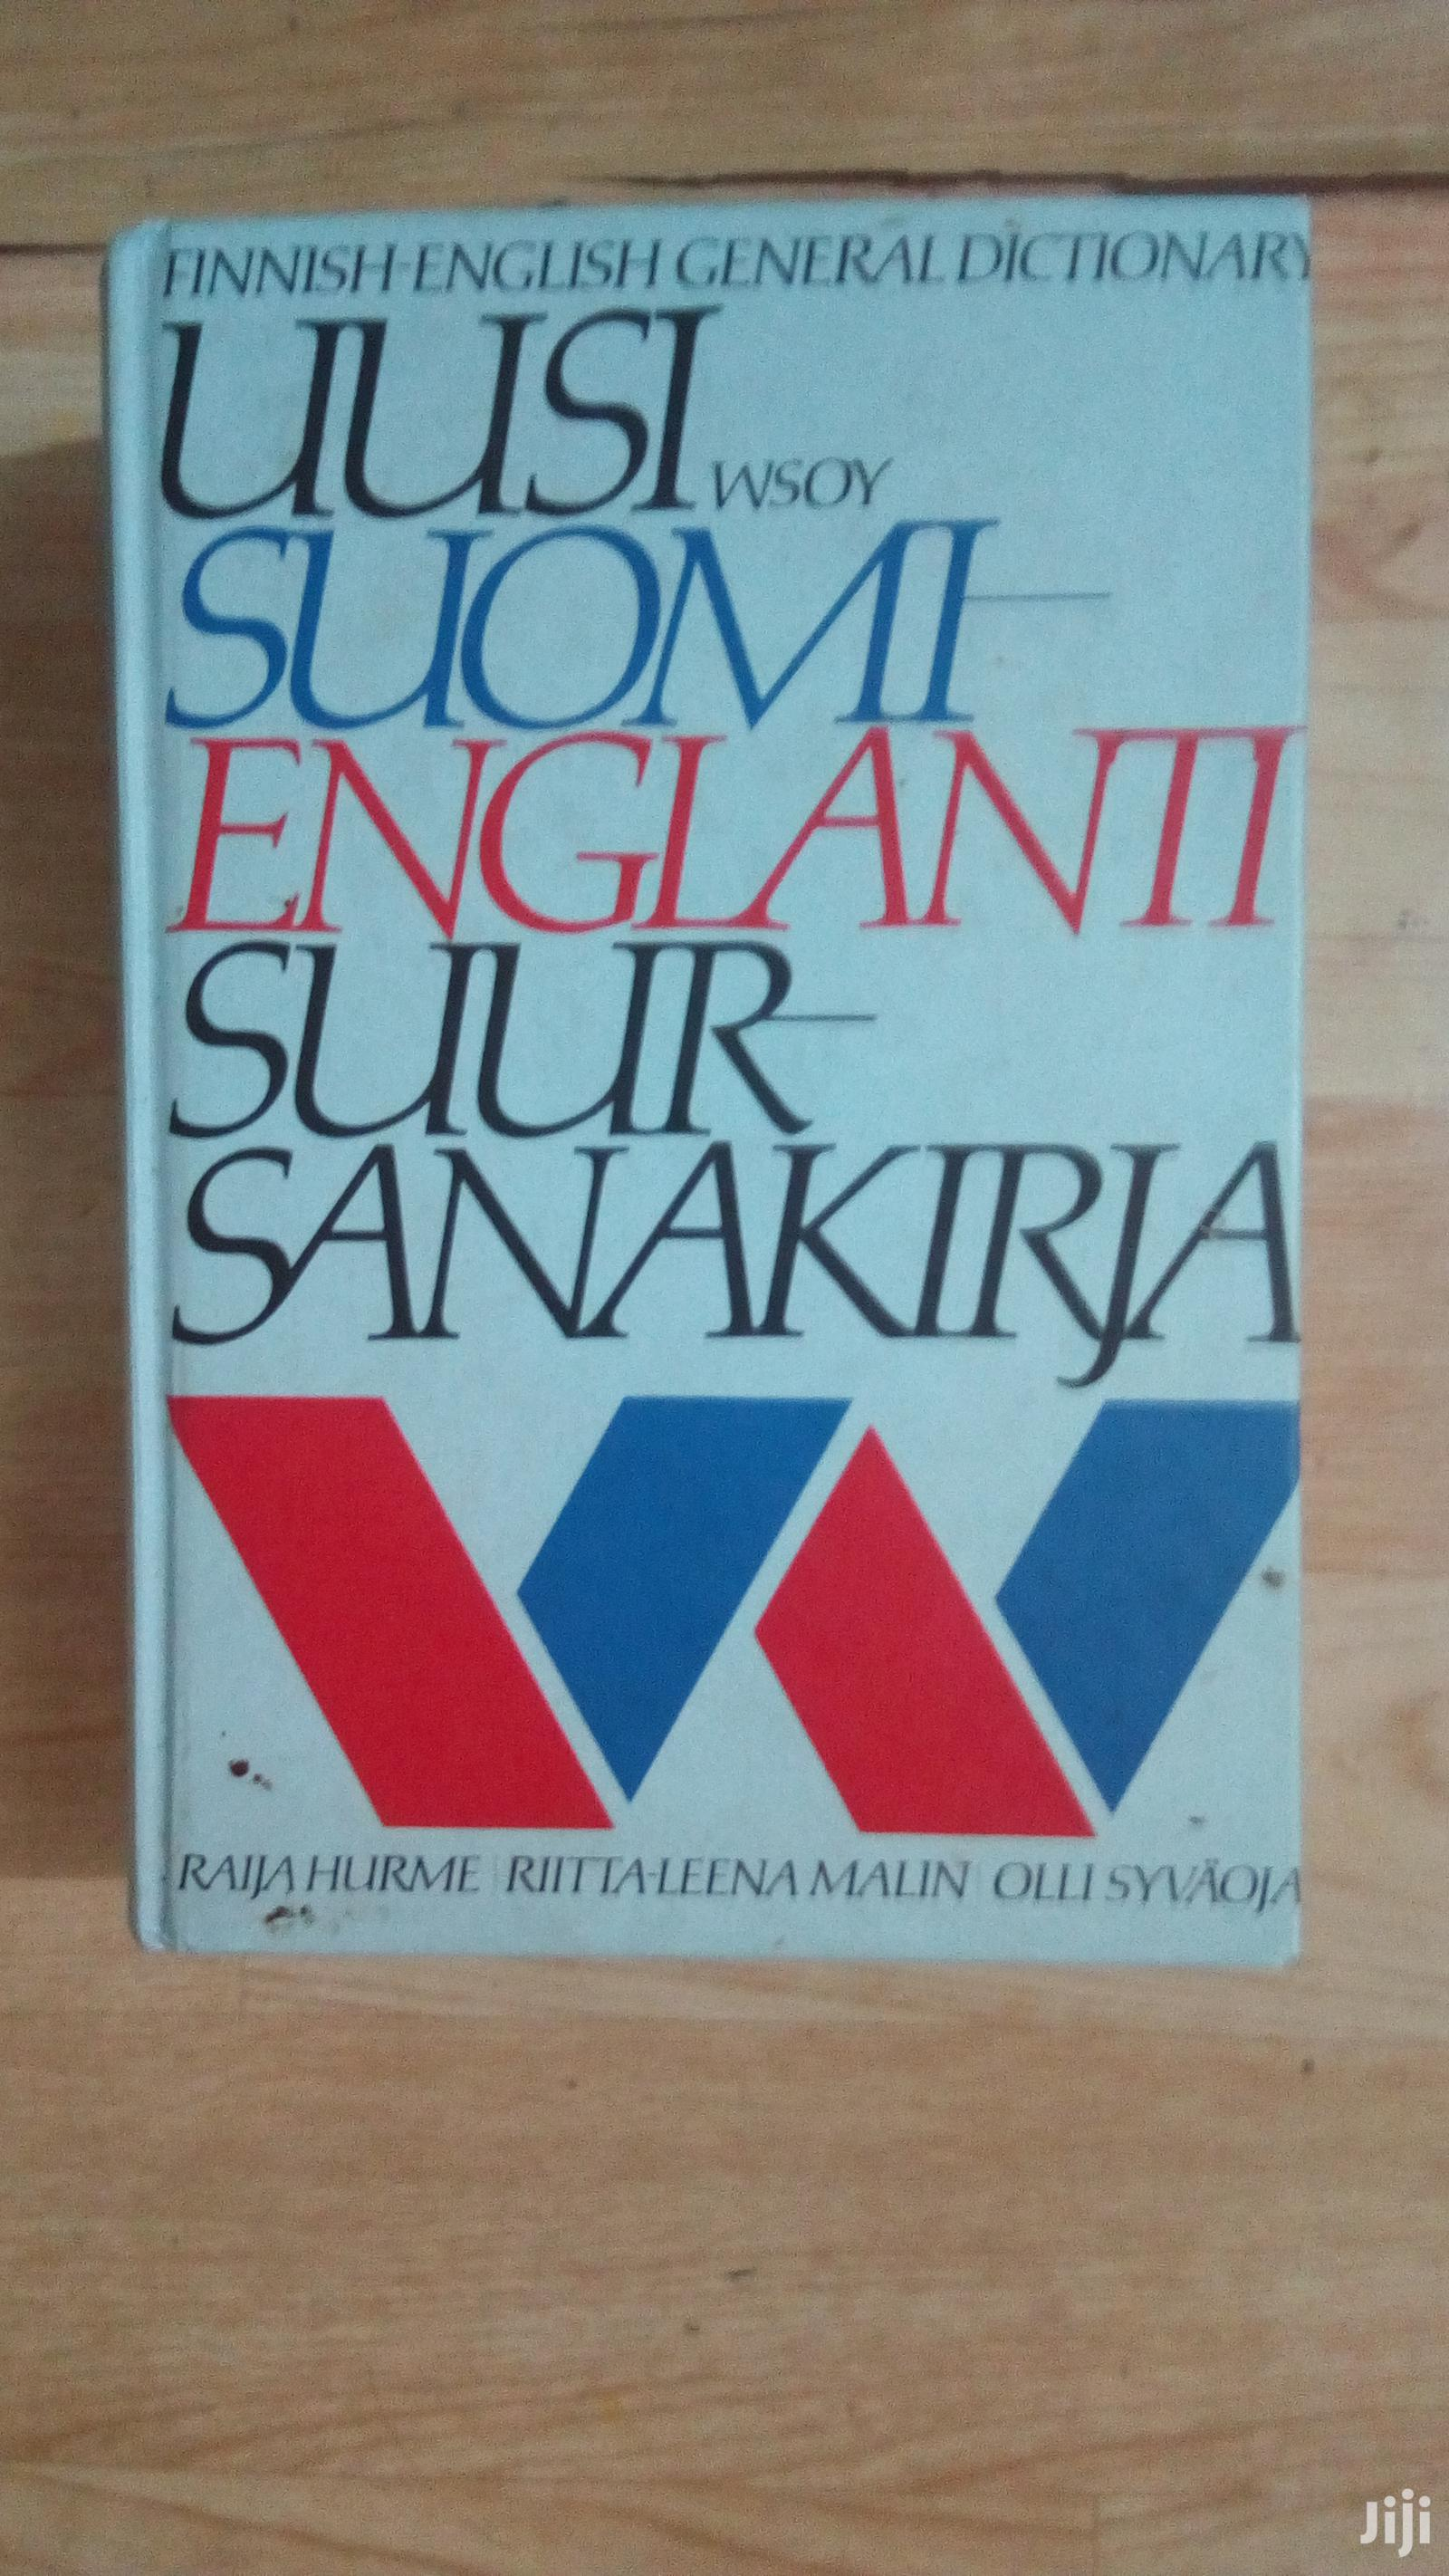 Archive: Finnish English General Dictionary